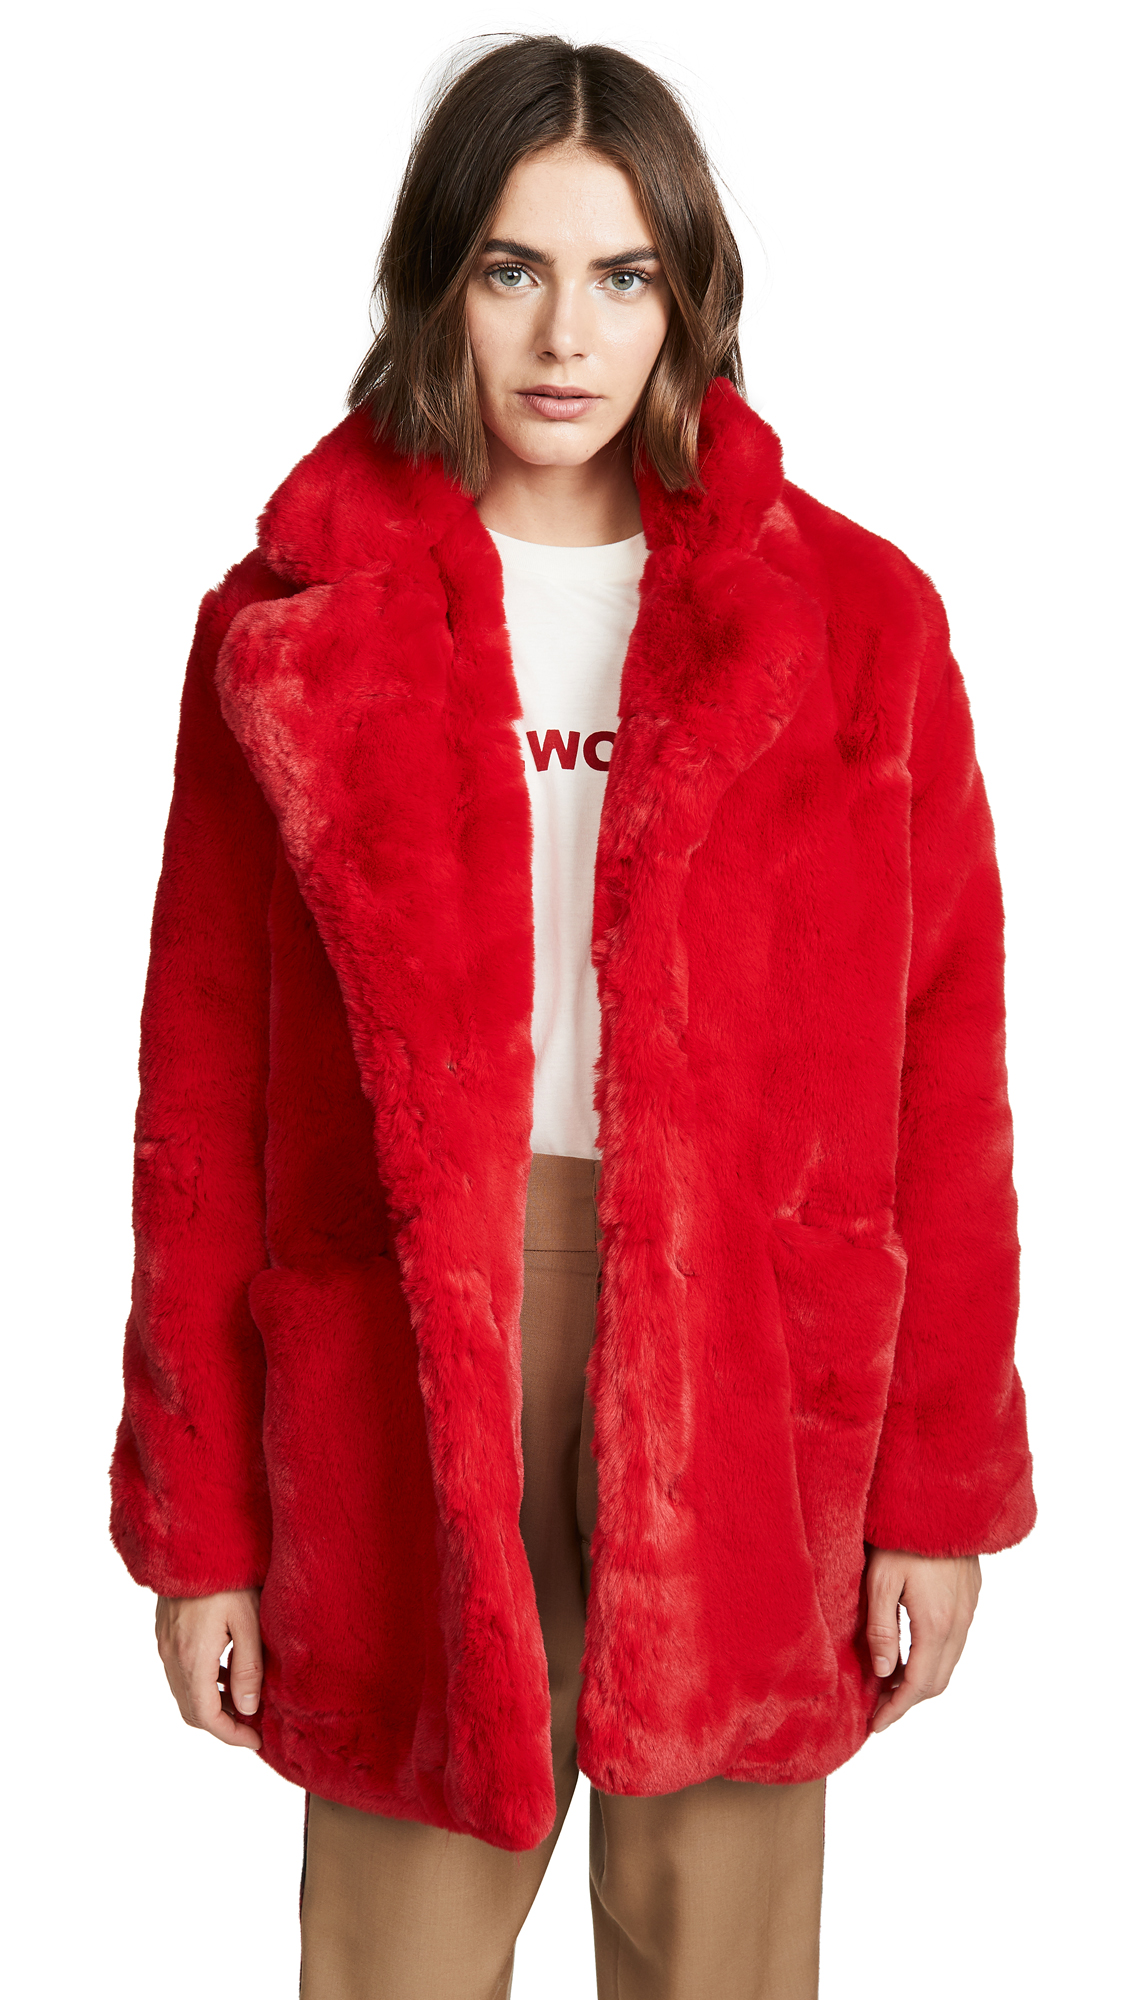 Sophie Red Faux Fur Coat Red in Scarlet Red